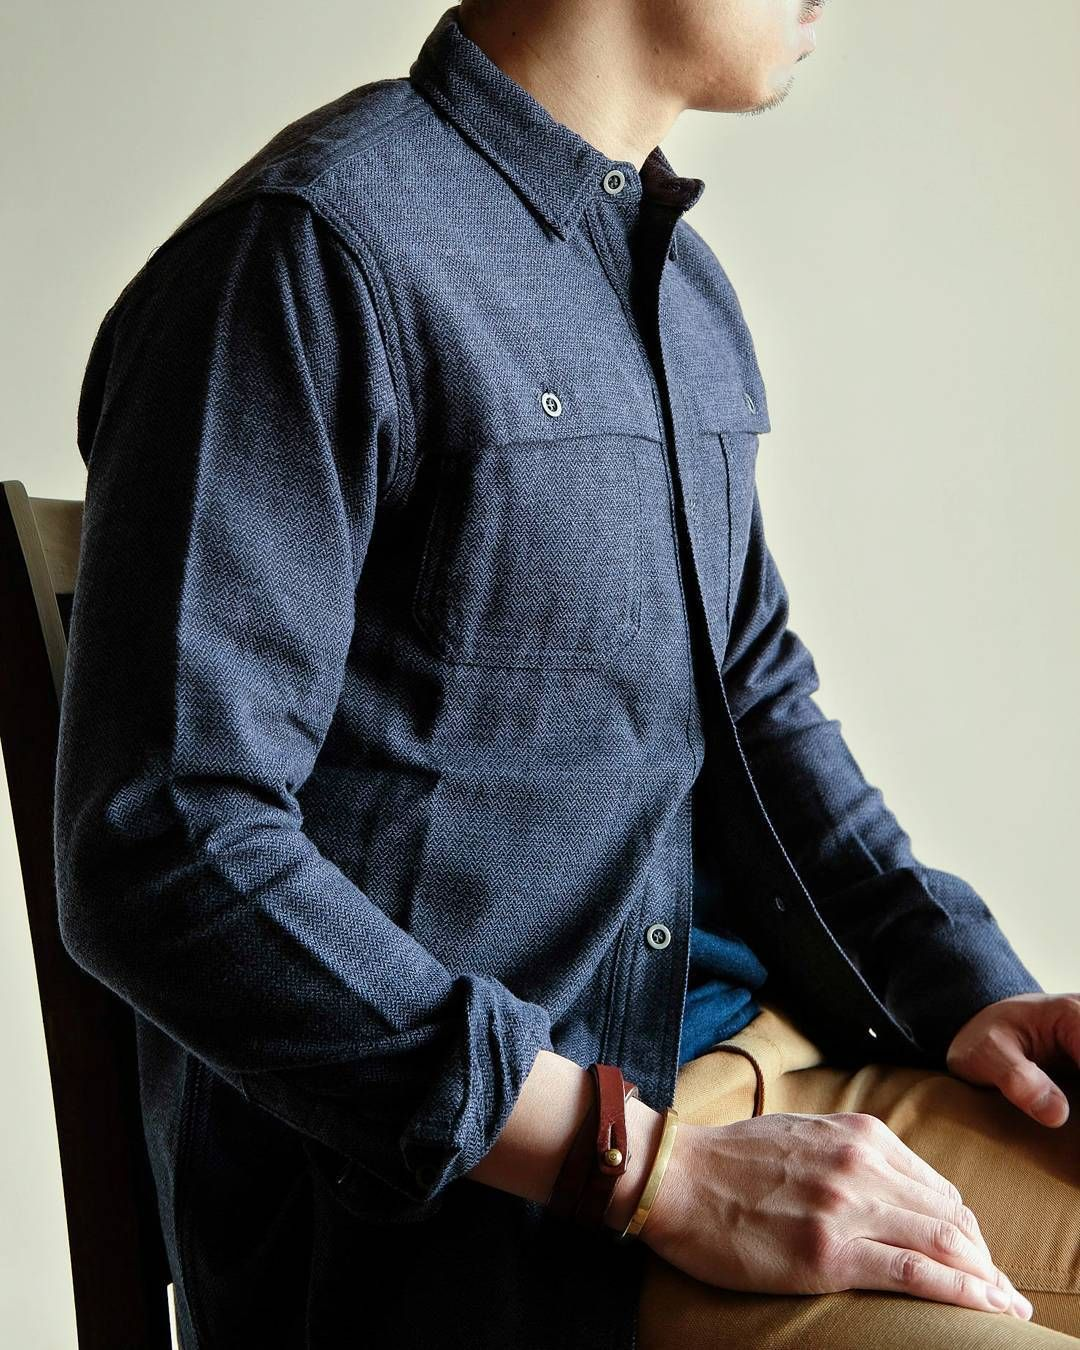 671526df436 Herringbone Flannel Hunting Shirt in Navy.... absolutely awesome. From   weatheredfig Follow  runnineverlong on Instagram for more inspiration